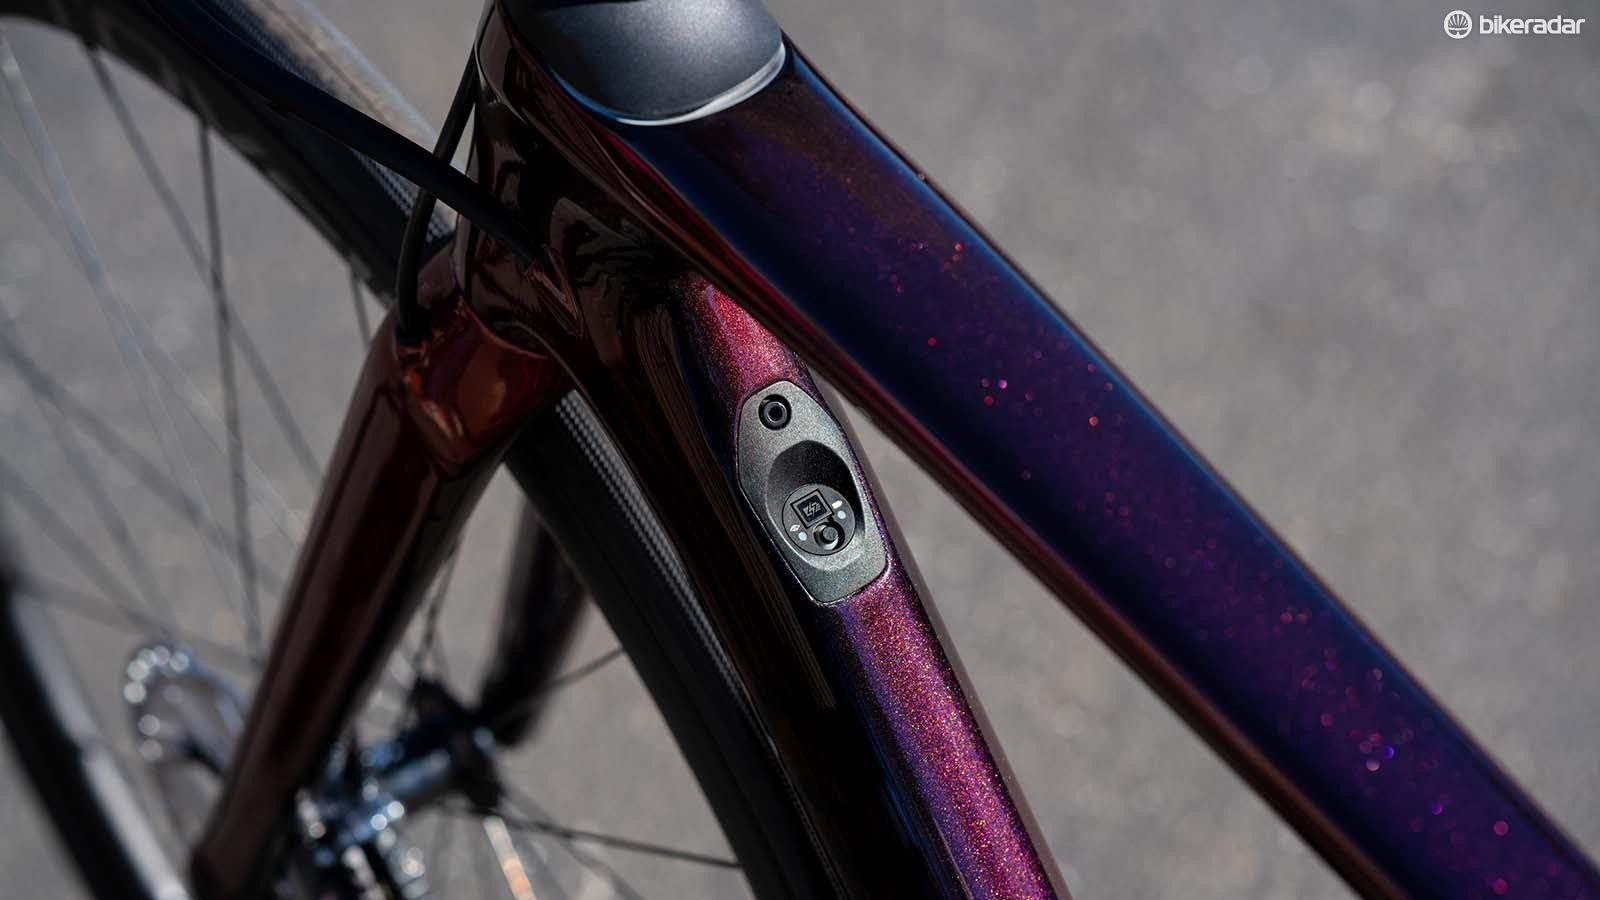 The Roubaix's downtube has a port for Shimano Di2 but it's blanked out on SRAM eTap equipped bikes.